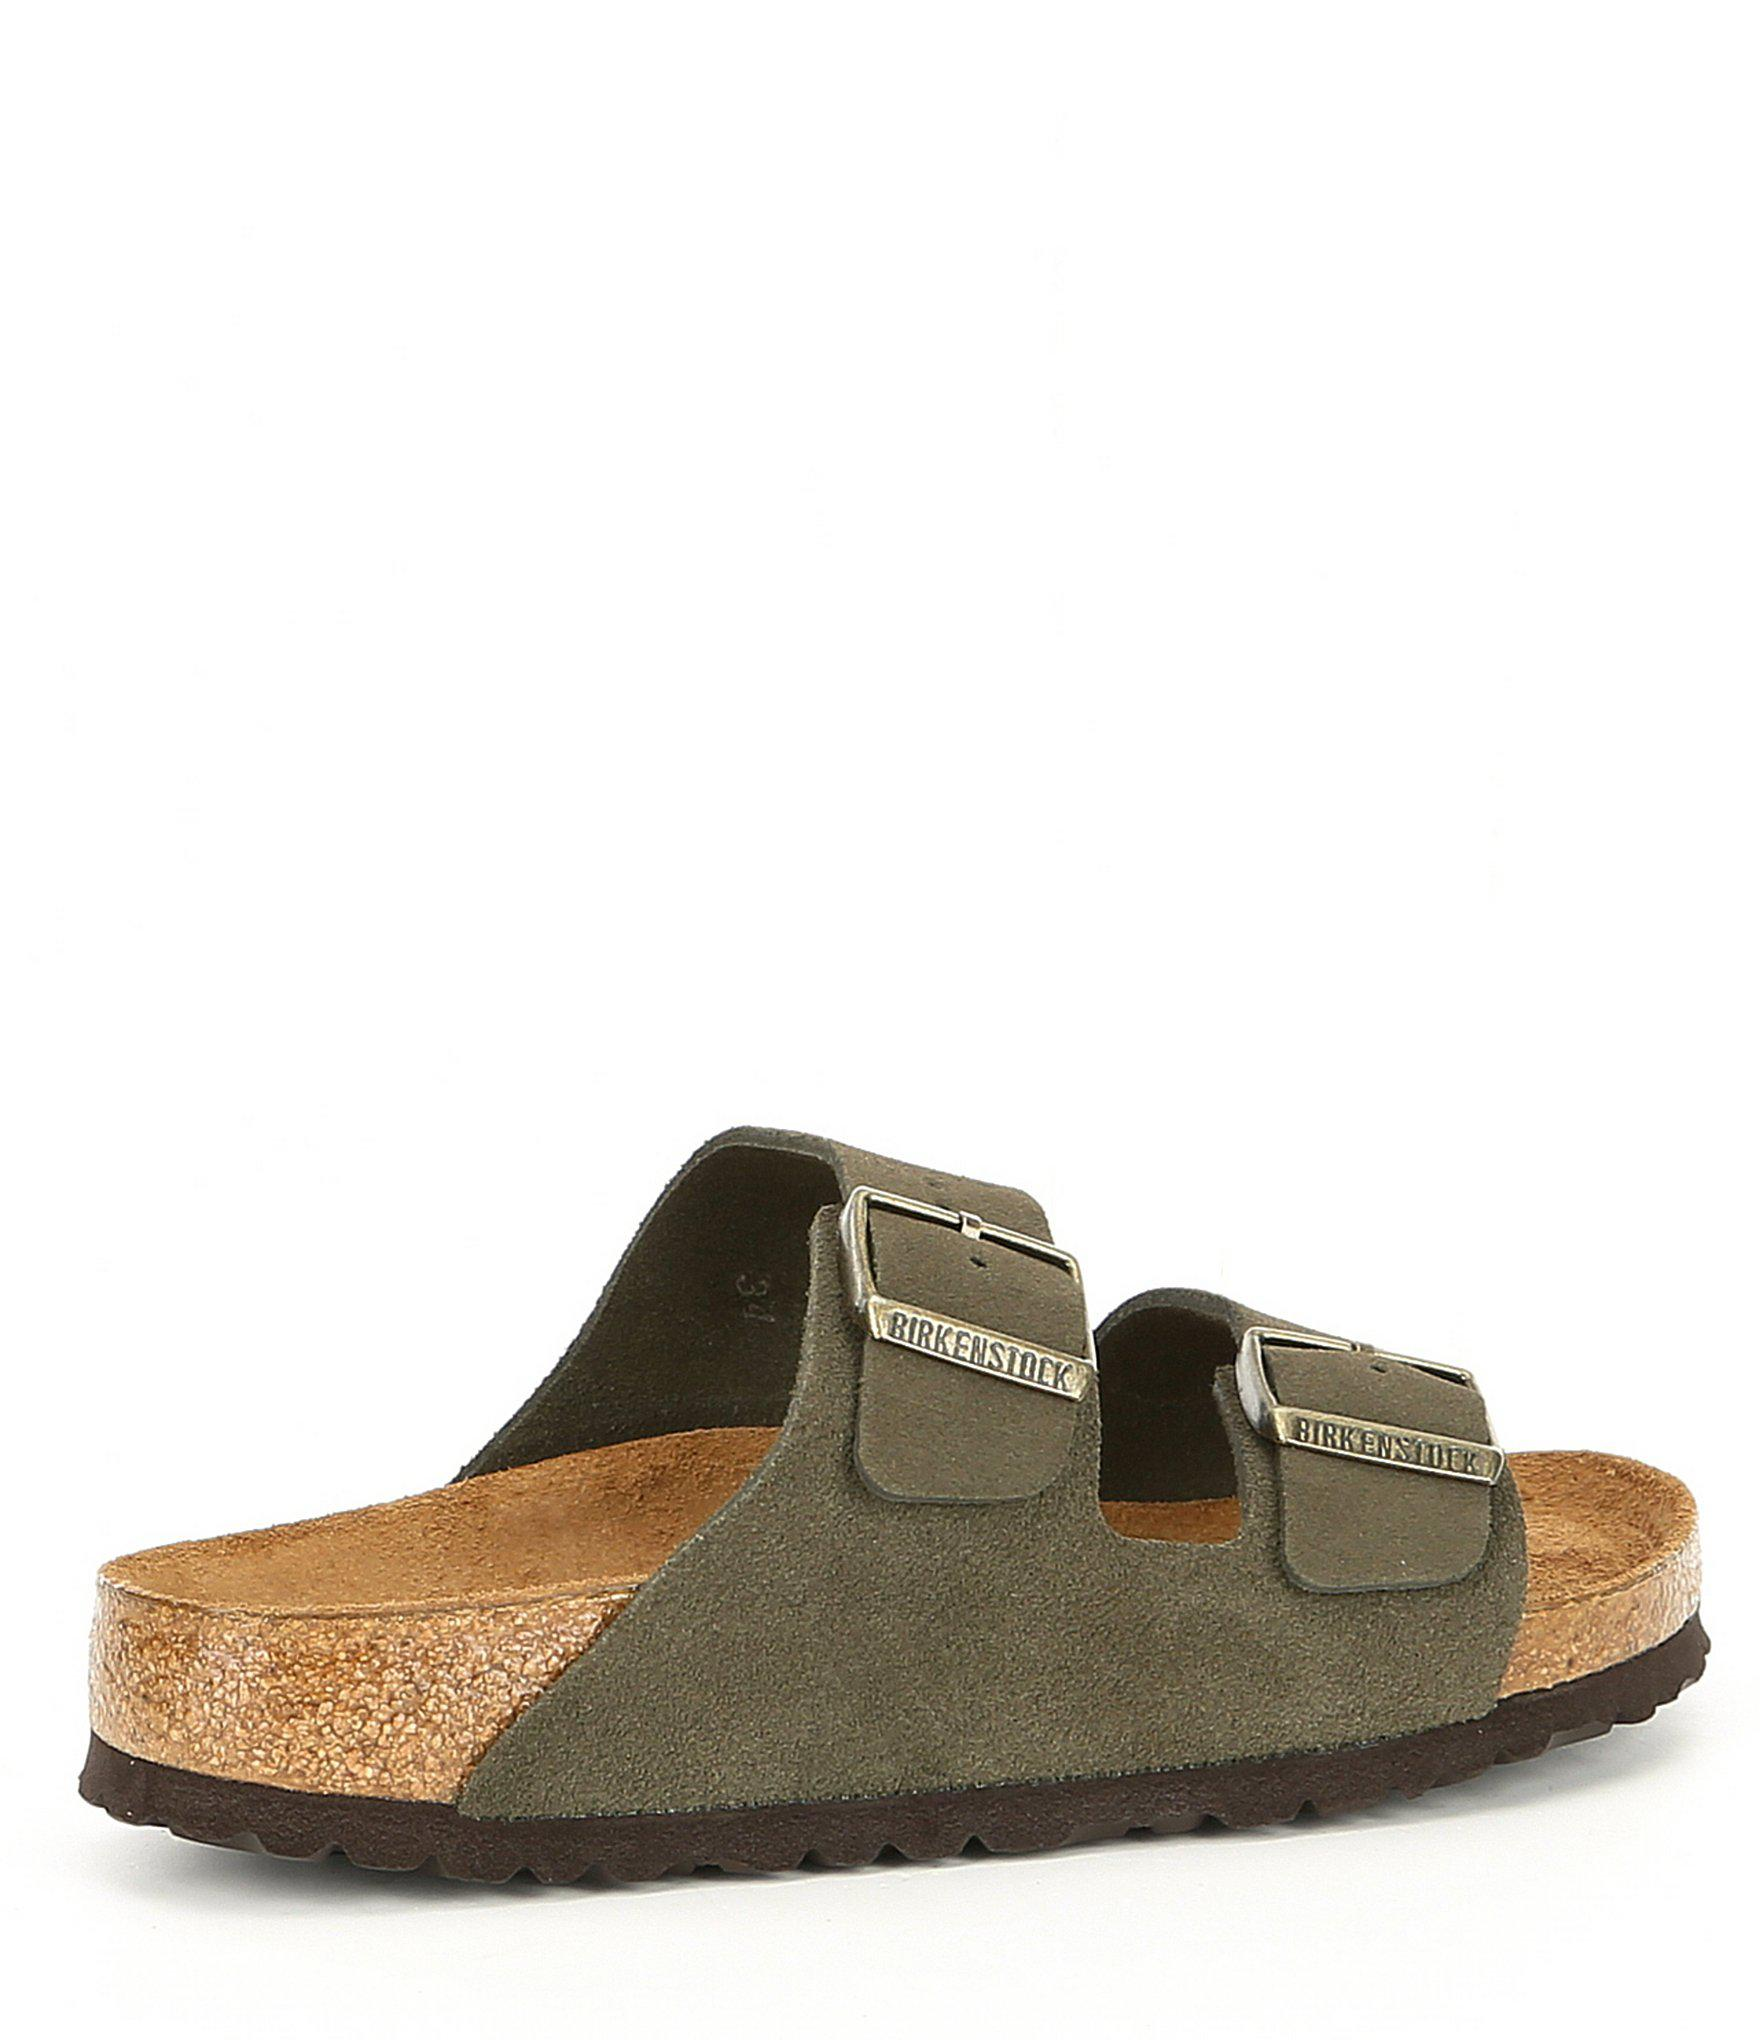 53cff6edec86 Birkenstock - Multicolor Arizona Soft Footbed Suede Slide Sandals - Lyst.  View fullscreen